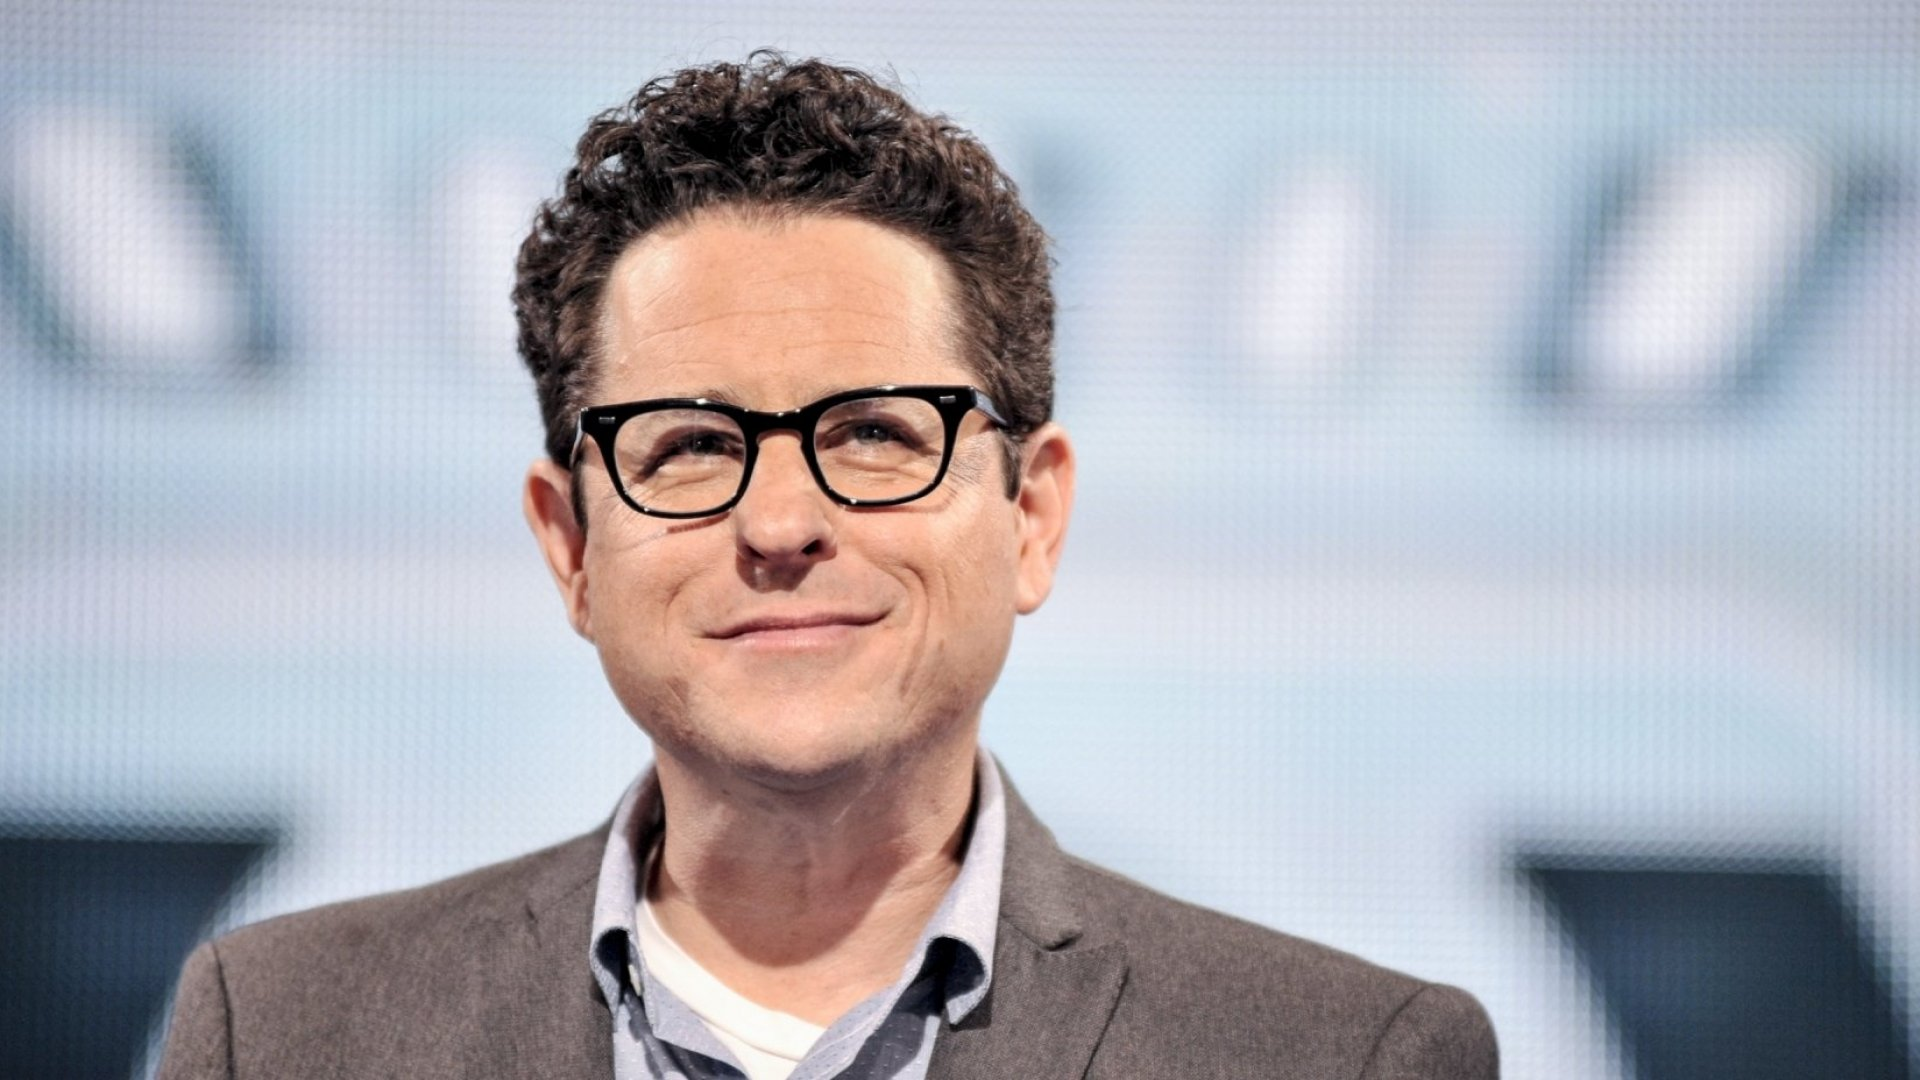 JJ Abrams Said His Decision to Sign a $250 Million Deal With WarnerMedia Came Down to the People